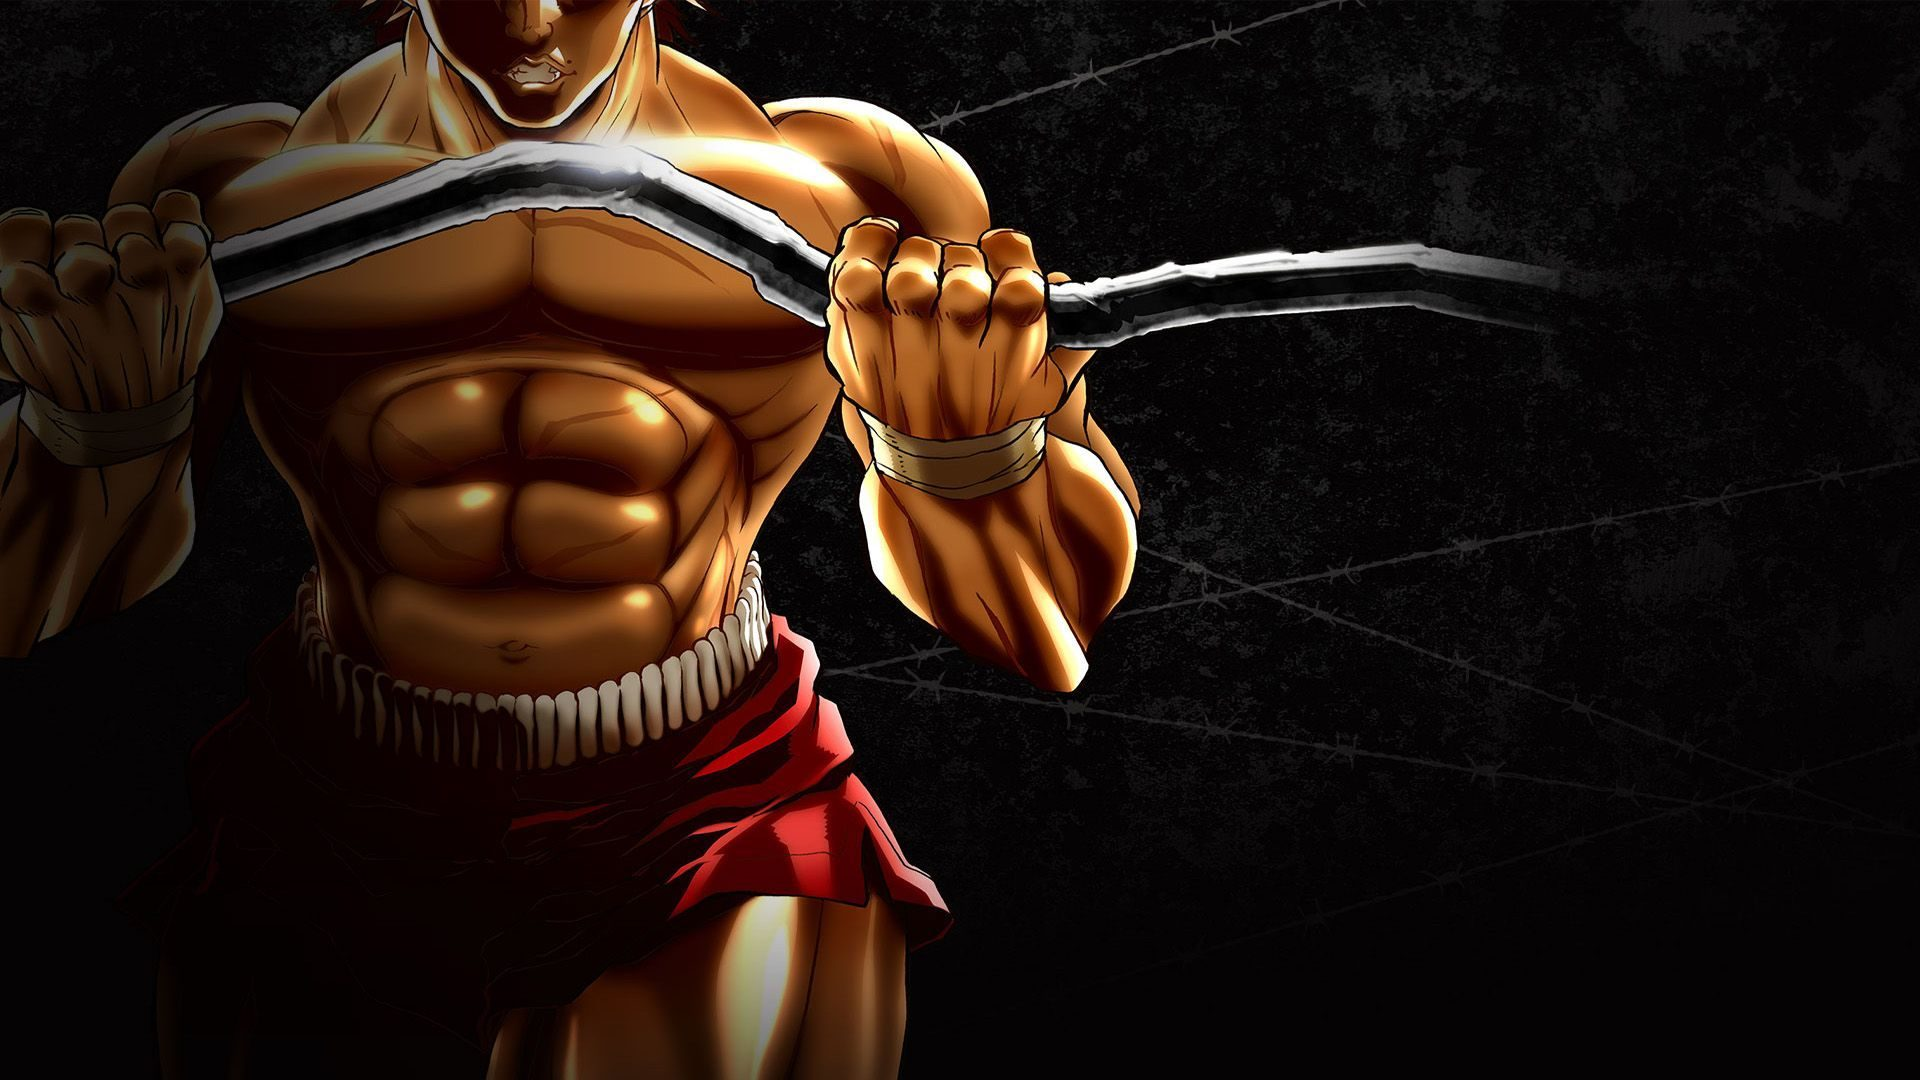 Baki Backgrounds